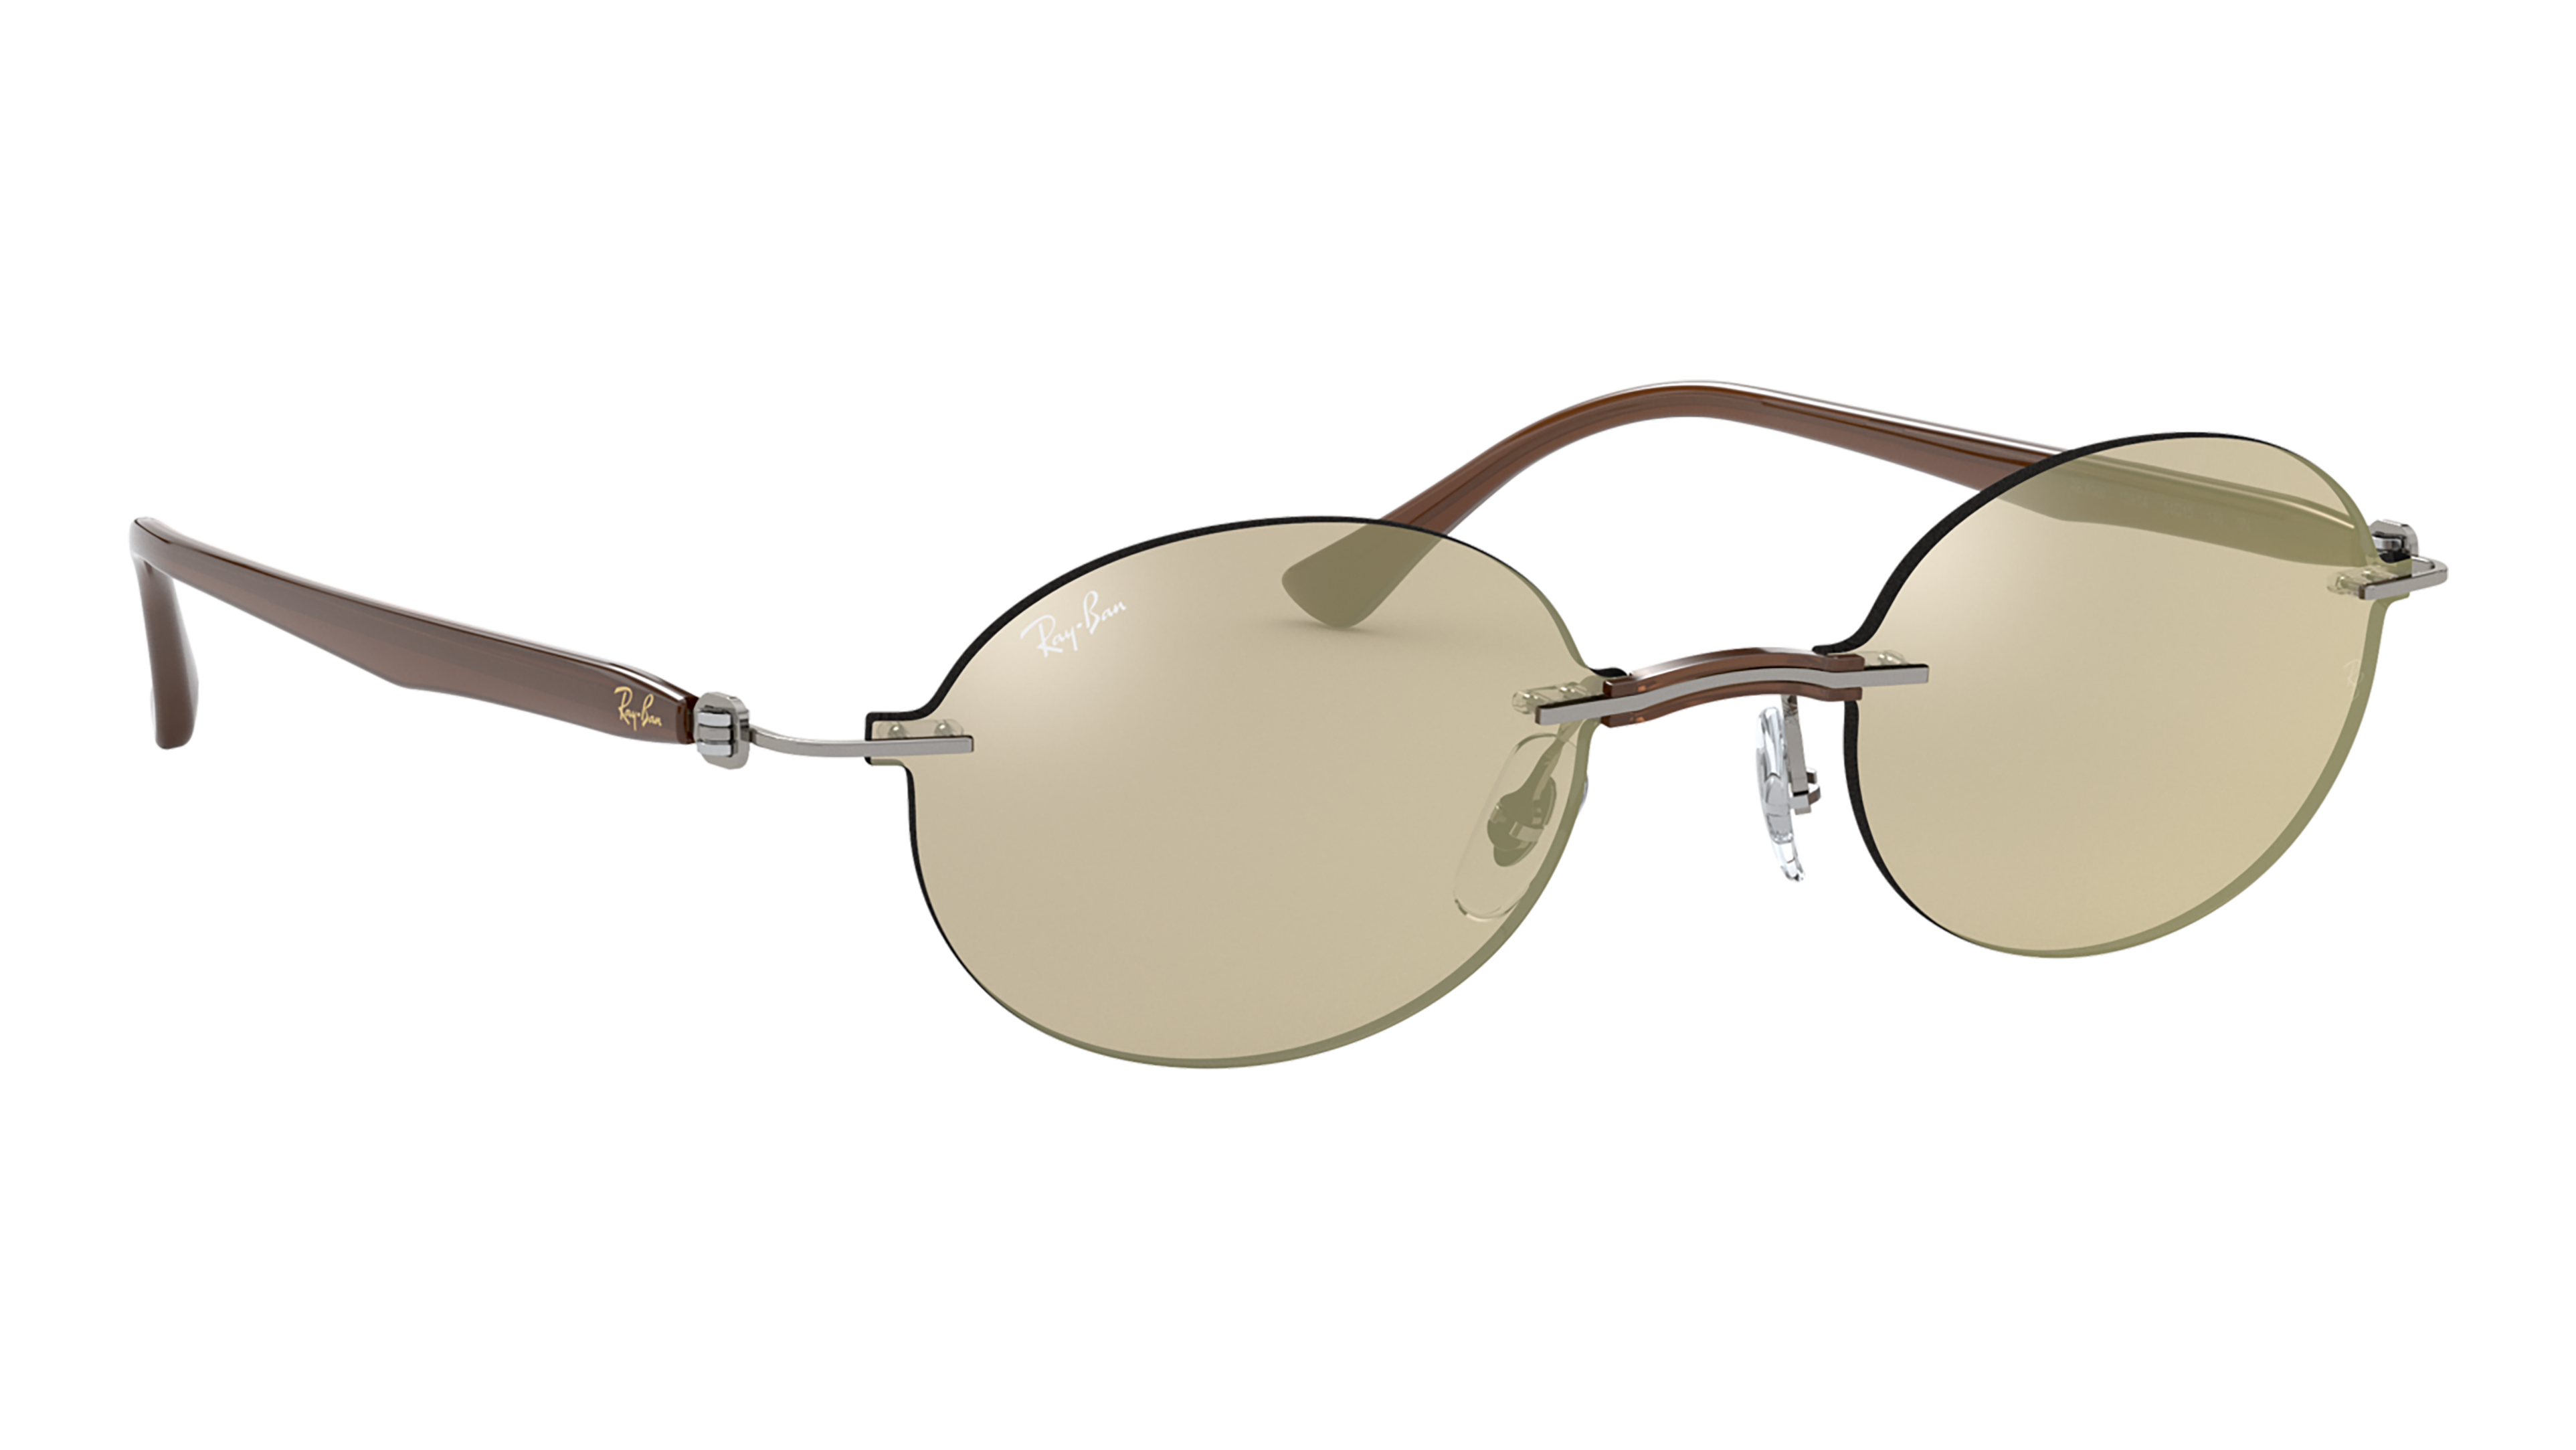 Angle_Right02 Ray-Ban Ray-Ban 0RB8060 159/5A 54/15 Transparant, Zilver/Grijs